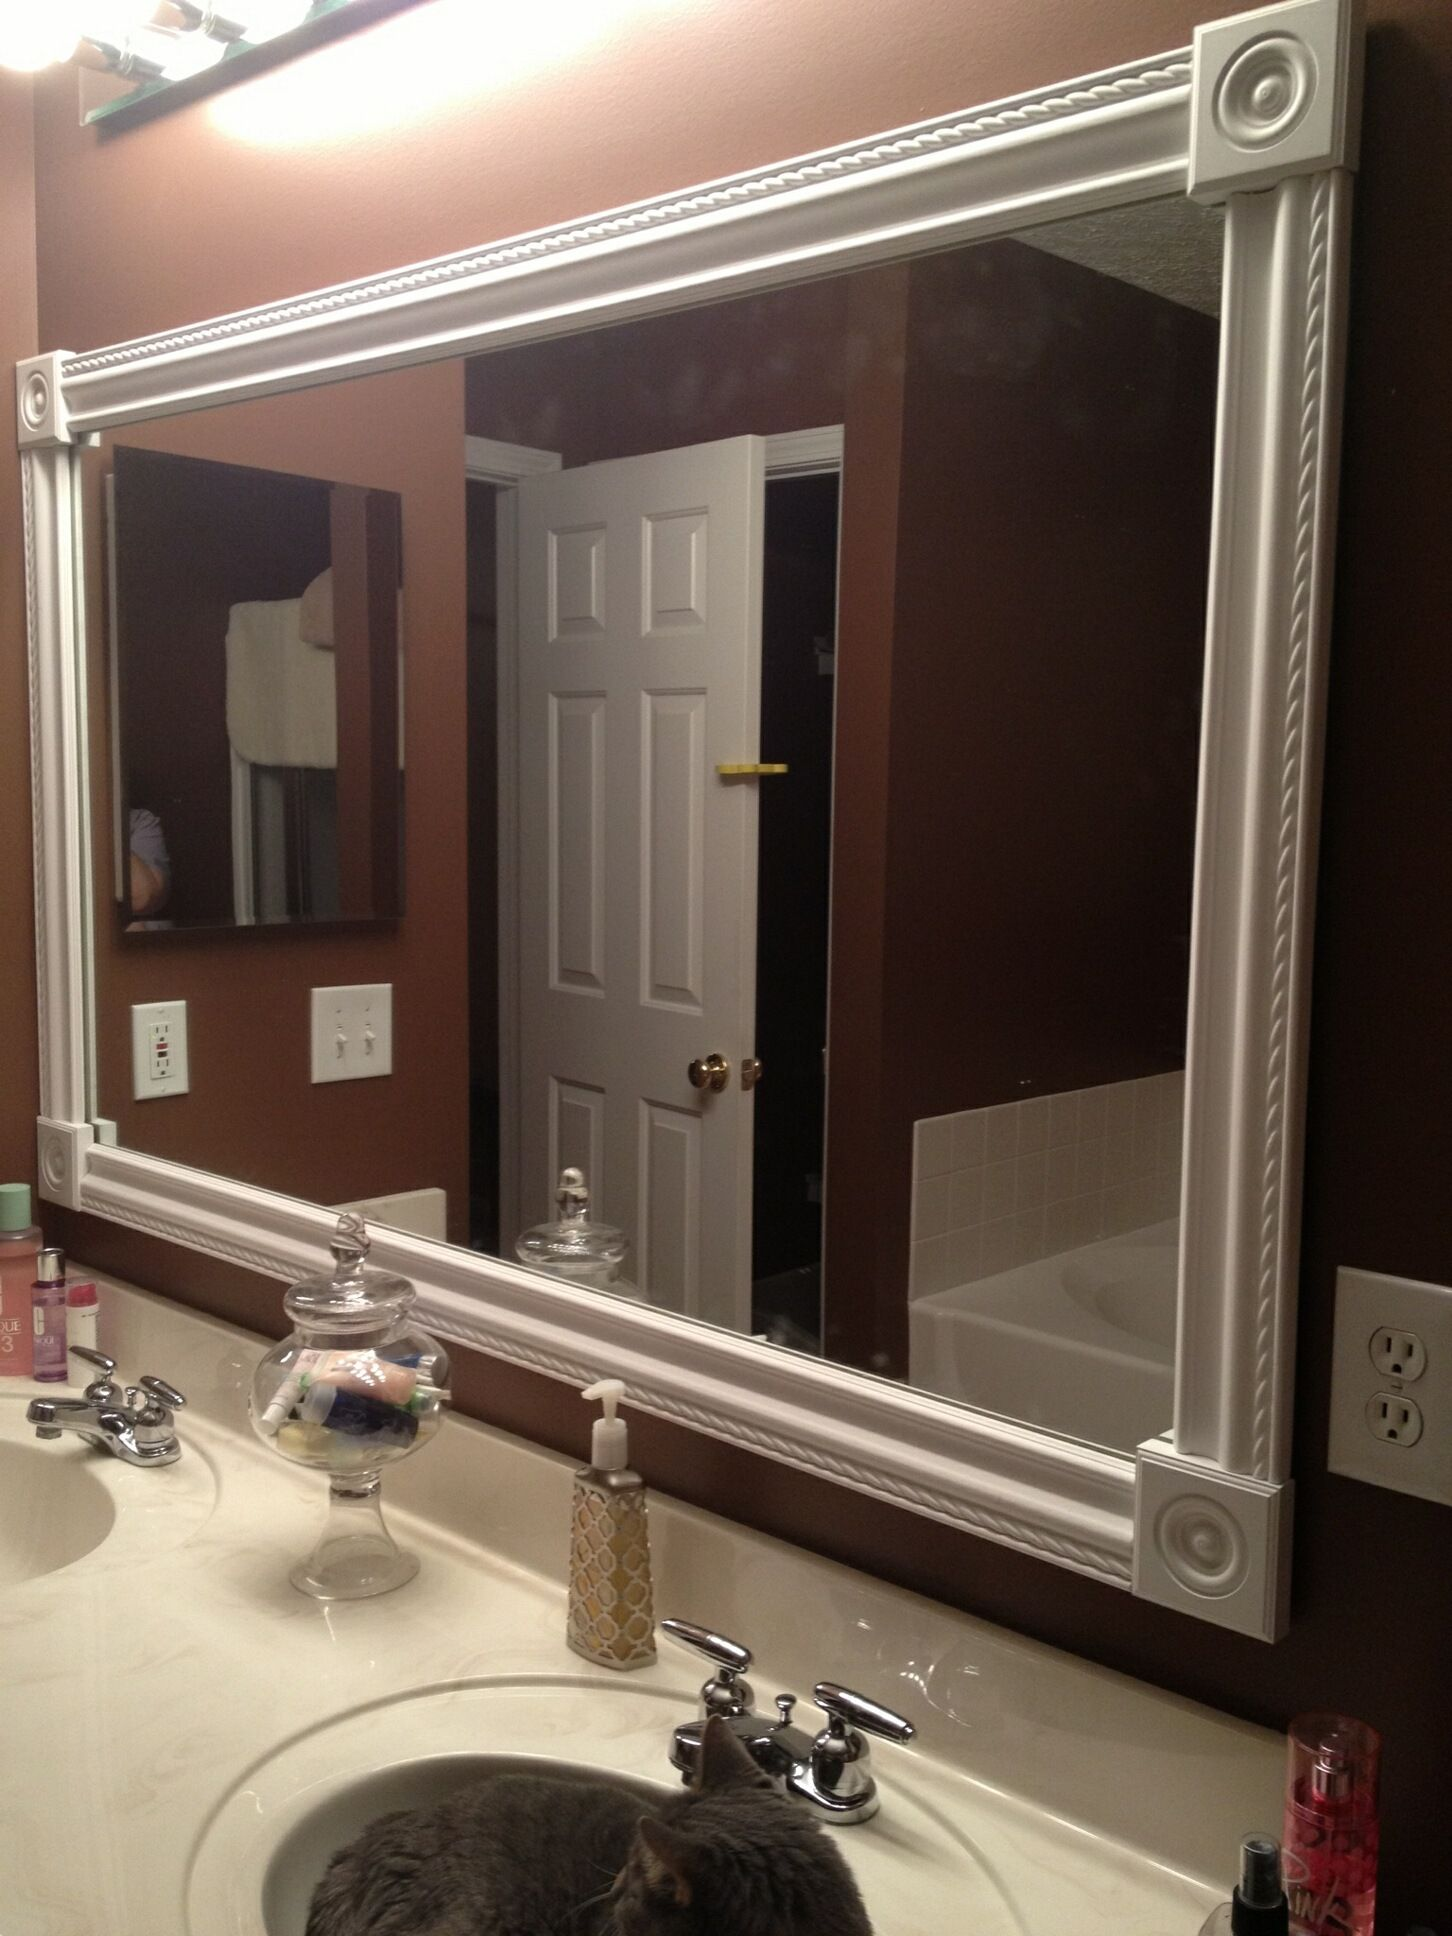 Exceptionnel A Large Framed Mirror Is Impressive And Elegant. There Are An Endless  Number Of Ways To Design A Bathroom, From Creating A Layout To Choosing  Colors And ...